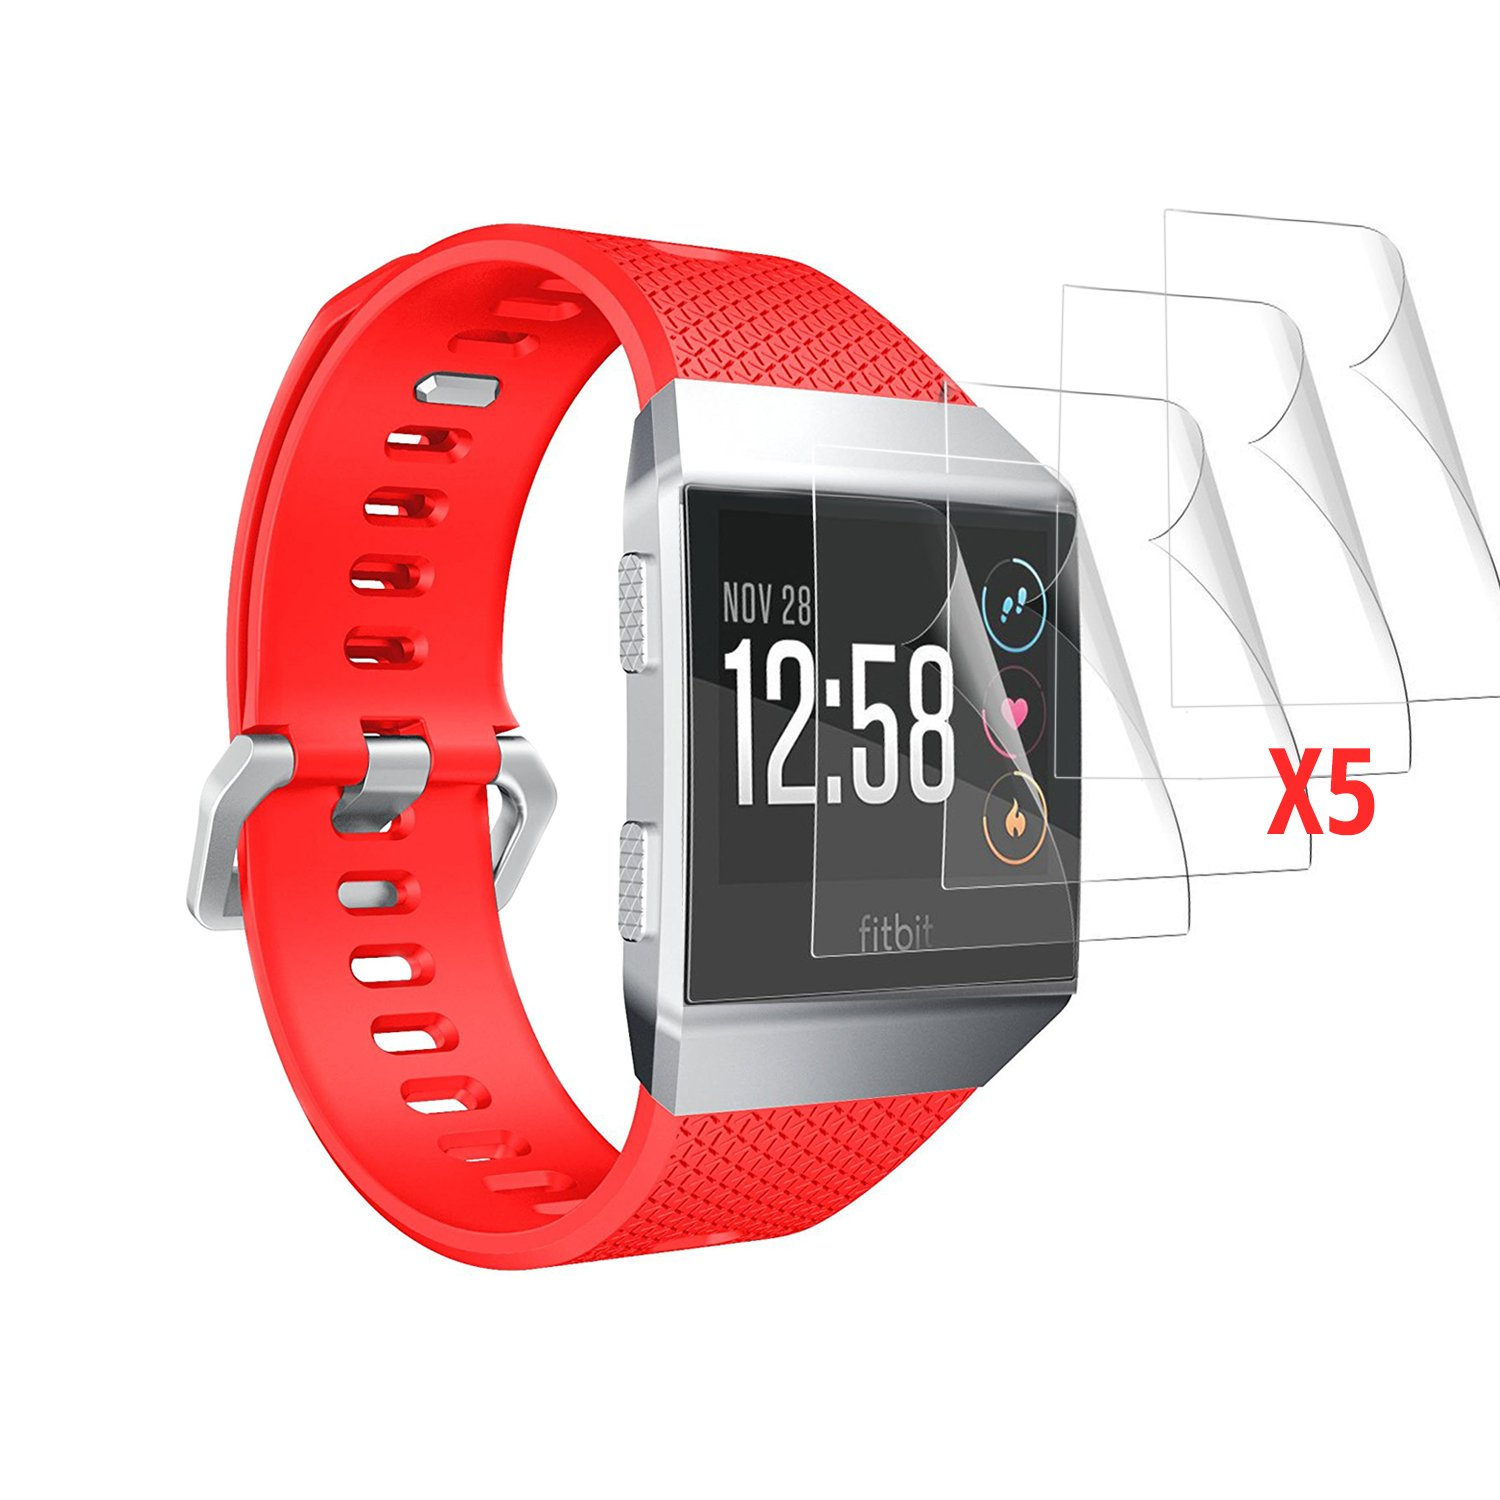 Orzly 5x Watch Screen Protectors for FitBit Ionic (2017 SmartWatch Model) - Multi-Pack of 5 Transparent Screen Guards for Fitbit Ionic